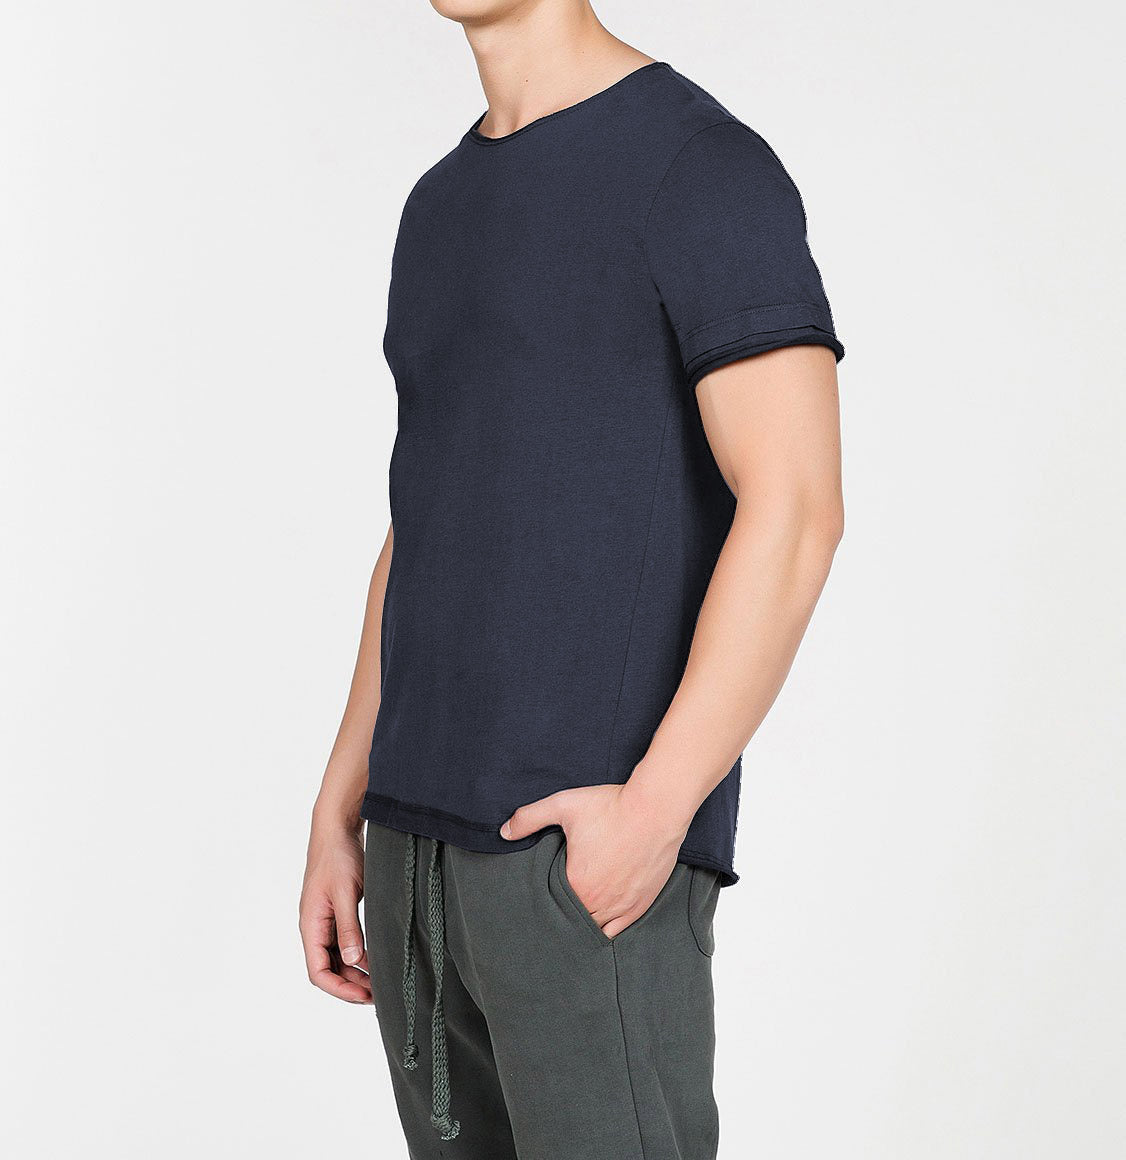 Organic Cotton Crew Neck Garment Dyed T-shirt Slate Blue | The Project Garments - B